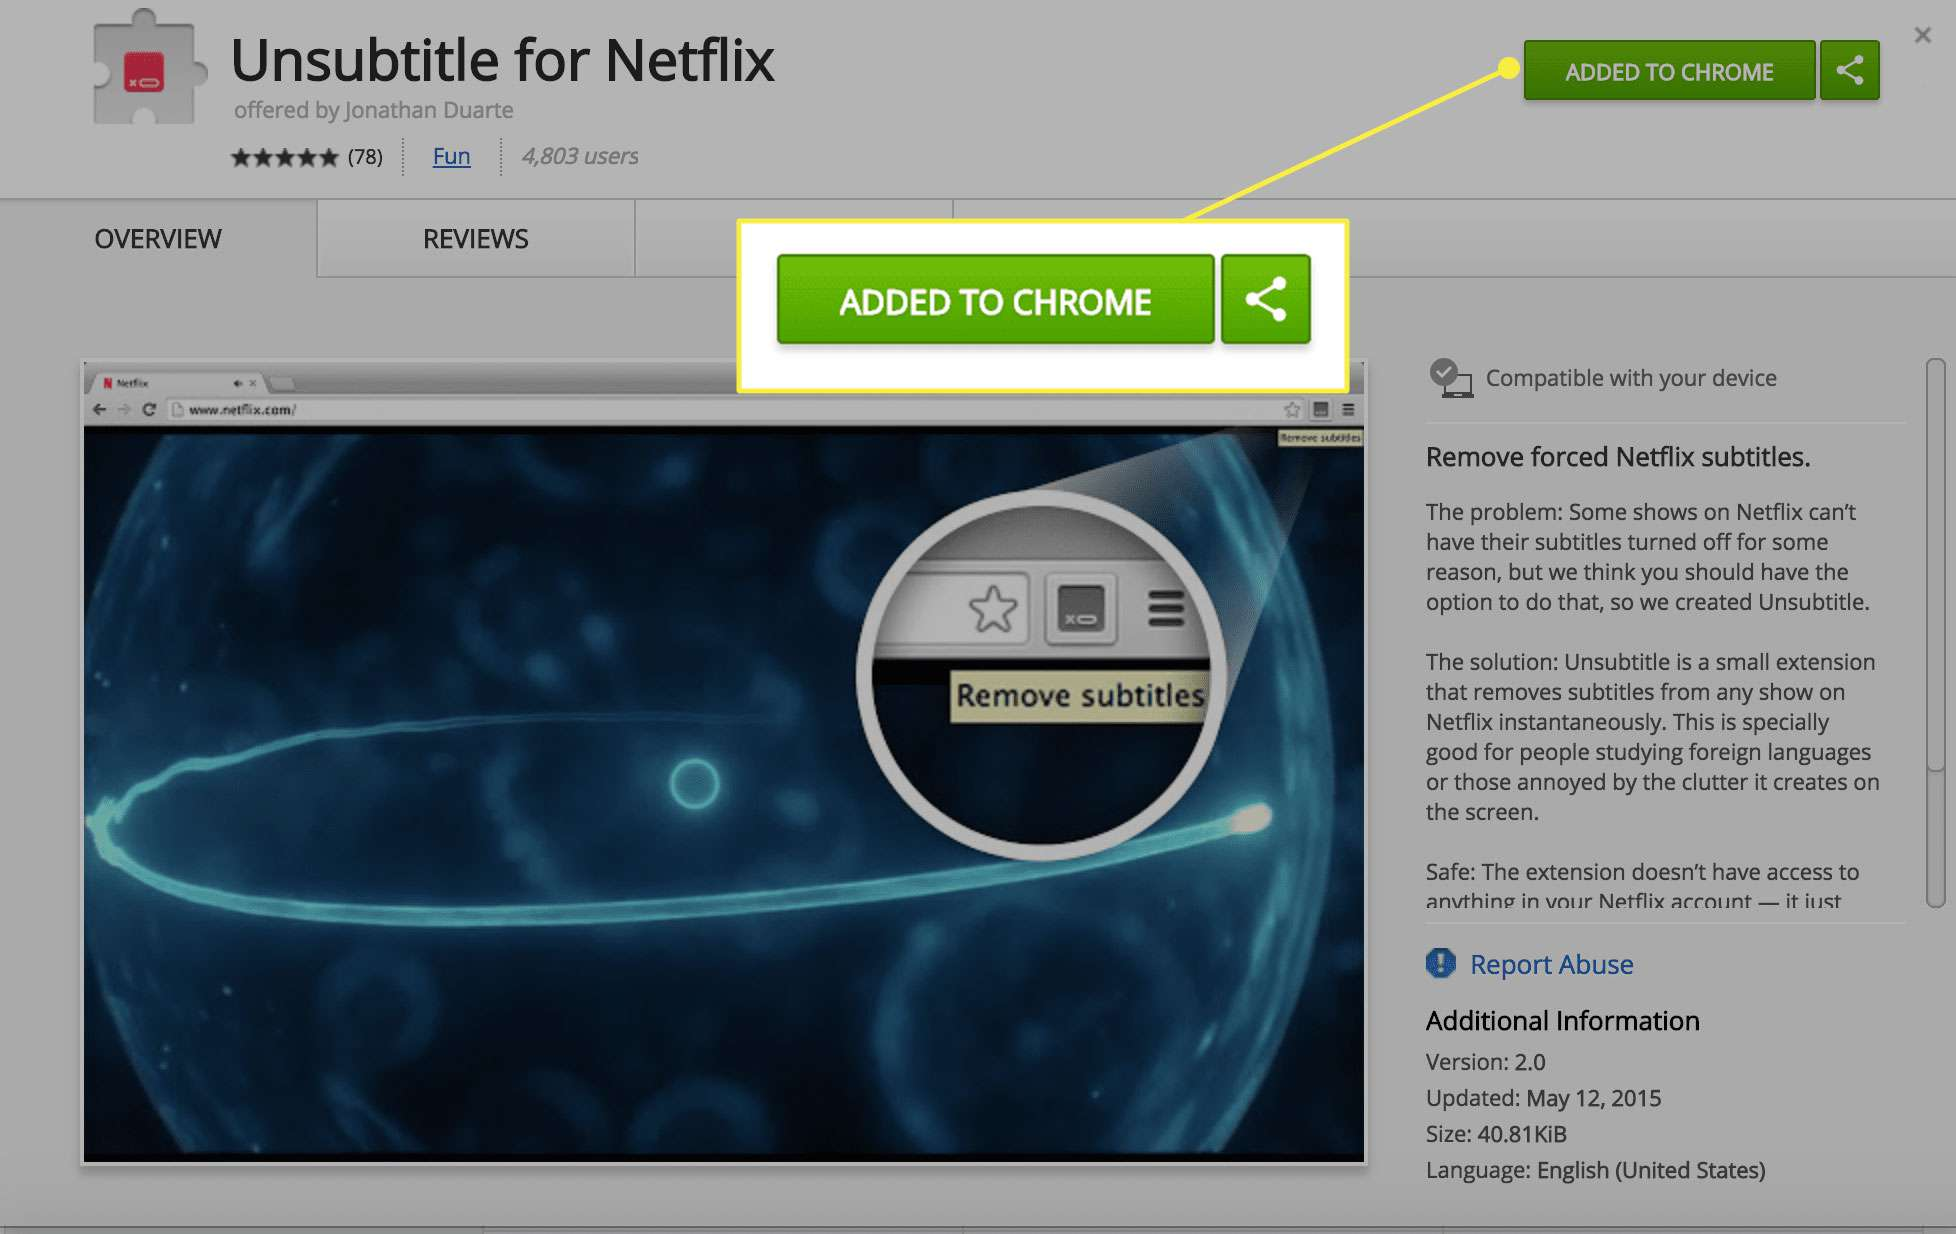 A screenshot of the Unsubtitle for Netflix Chrome extension page with the Add button highlighted